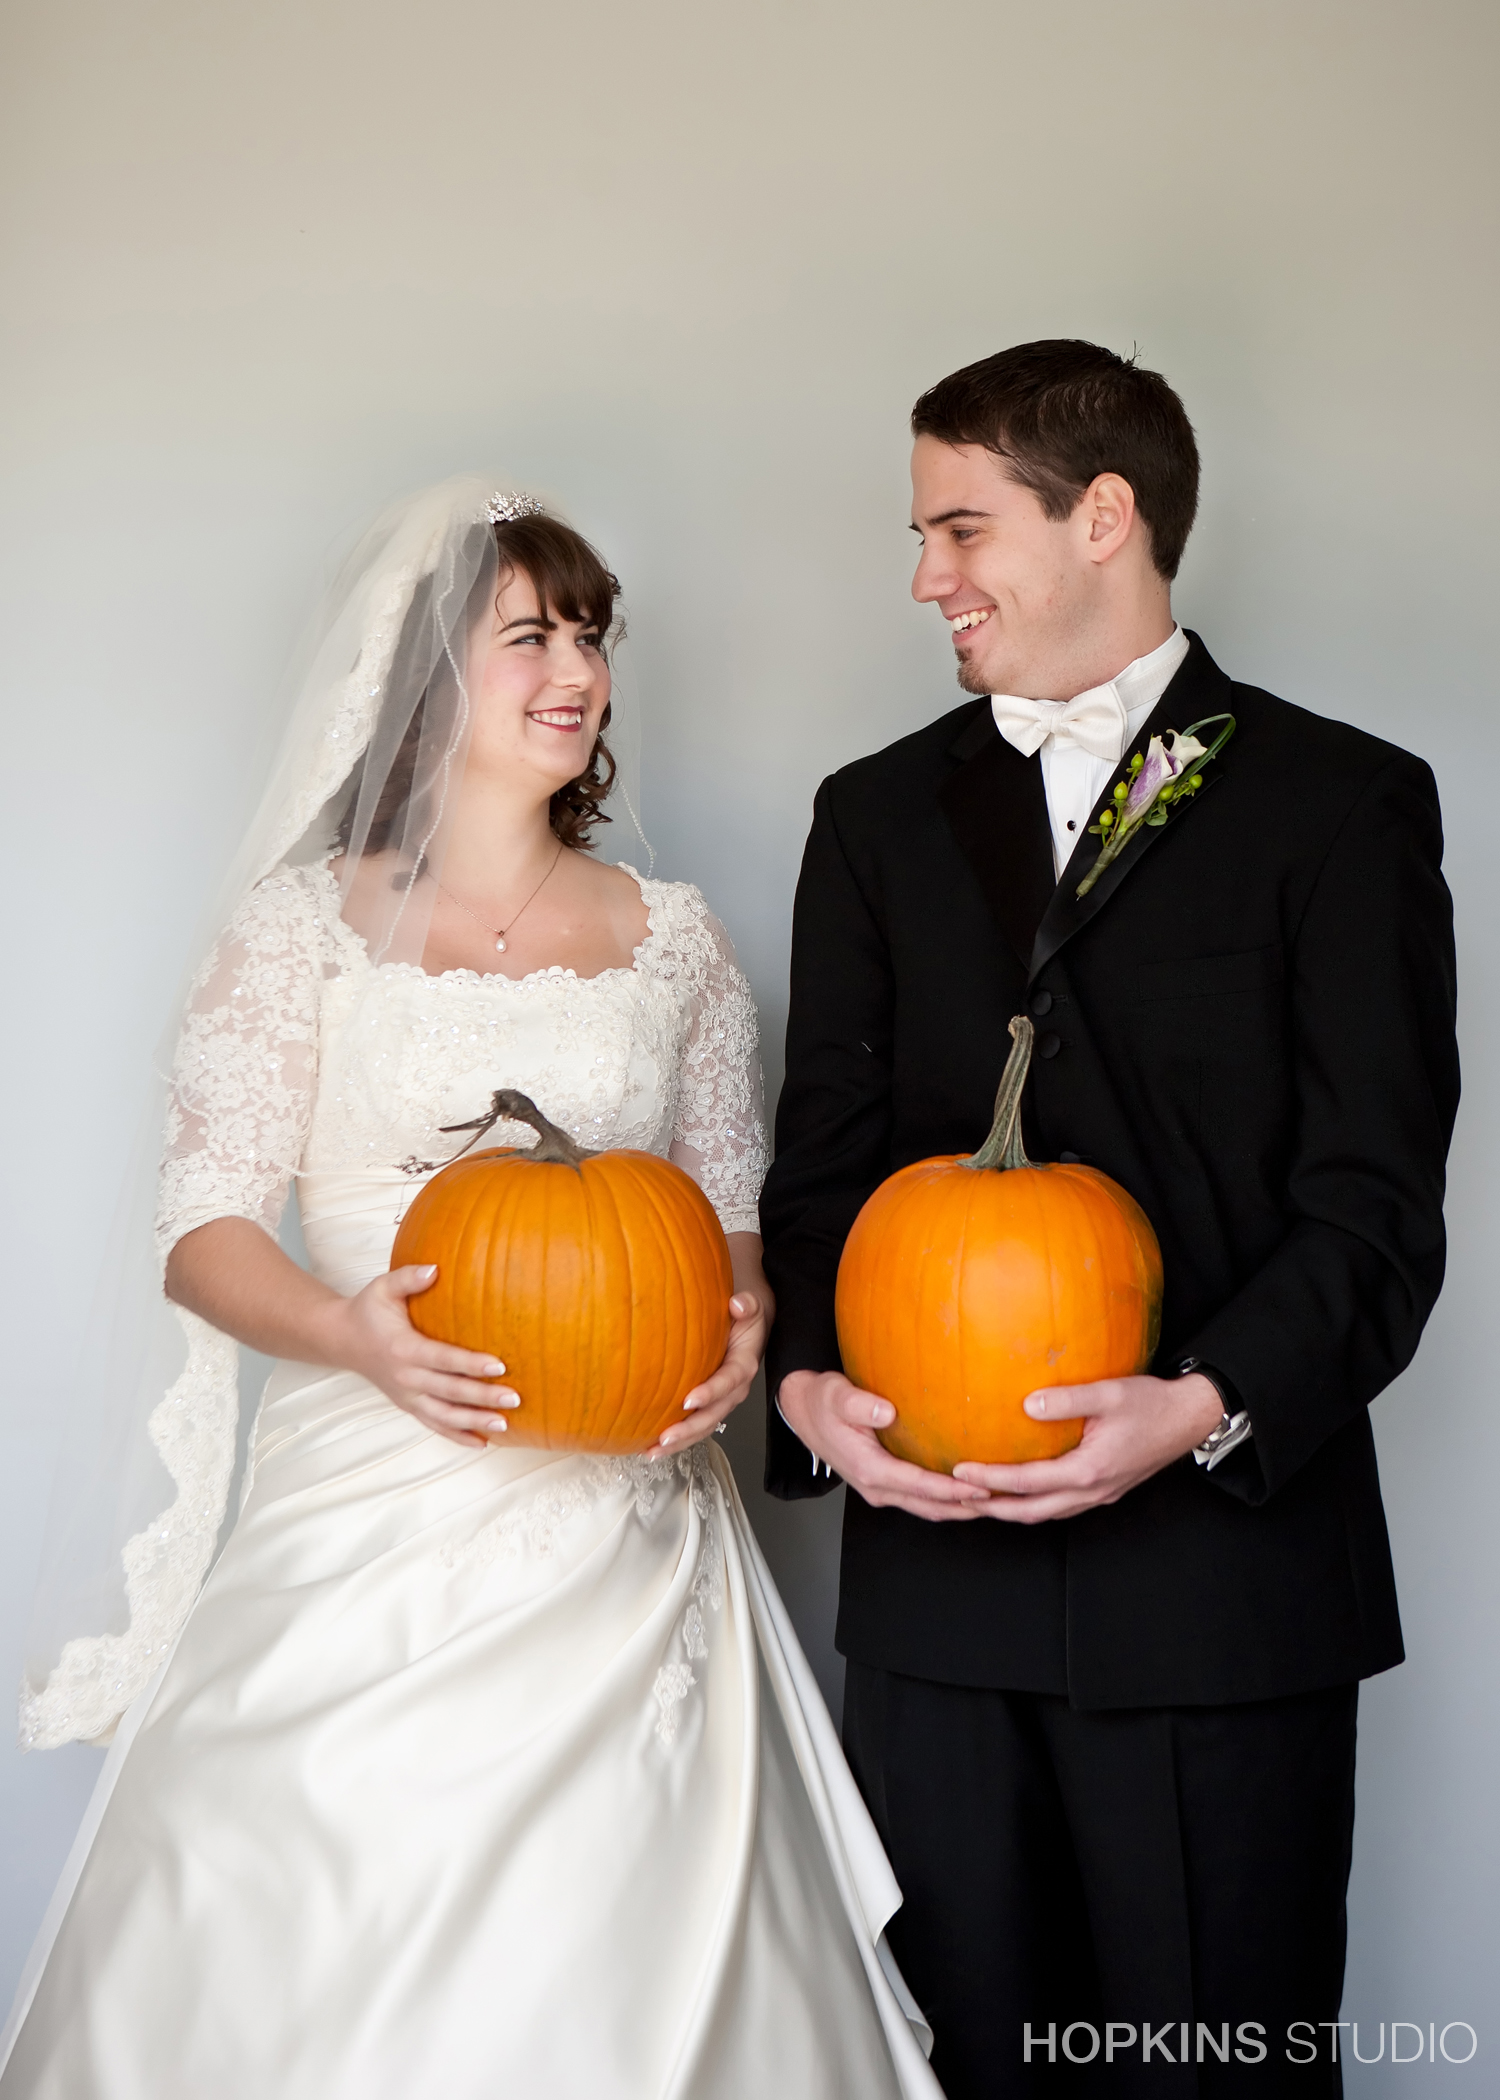 Wedding-Photography-Berrien-Bible-Church-Southwest-Michigan_15.jpg